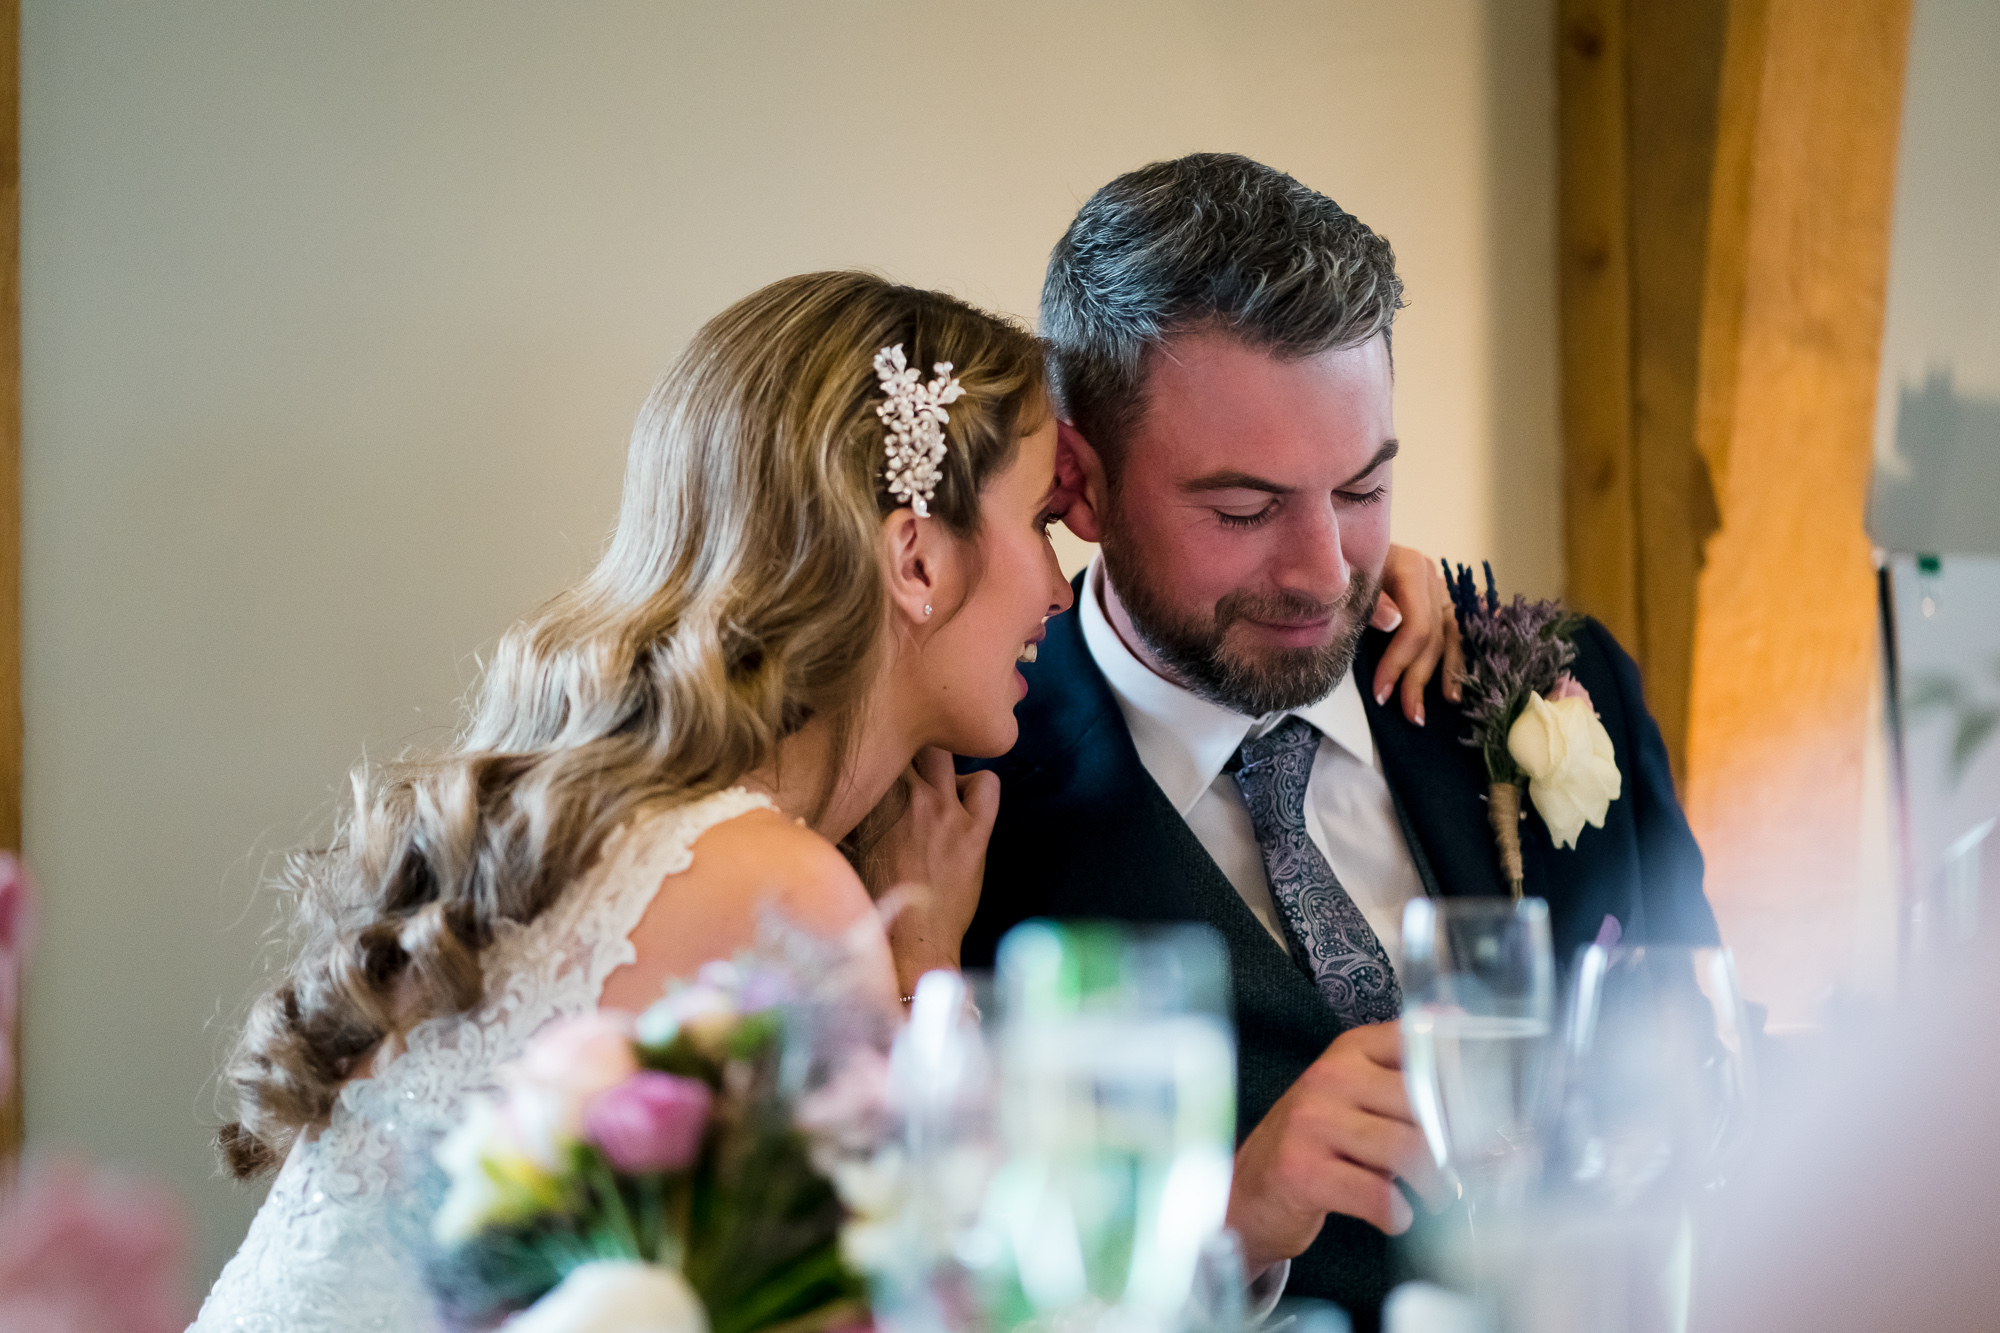 Tower Hill BArn Wedding Photographer based in north west england (34 of 35).jpg